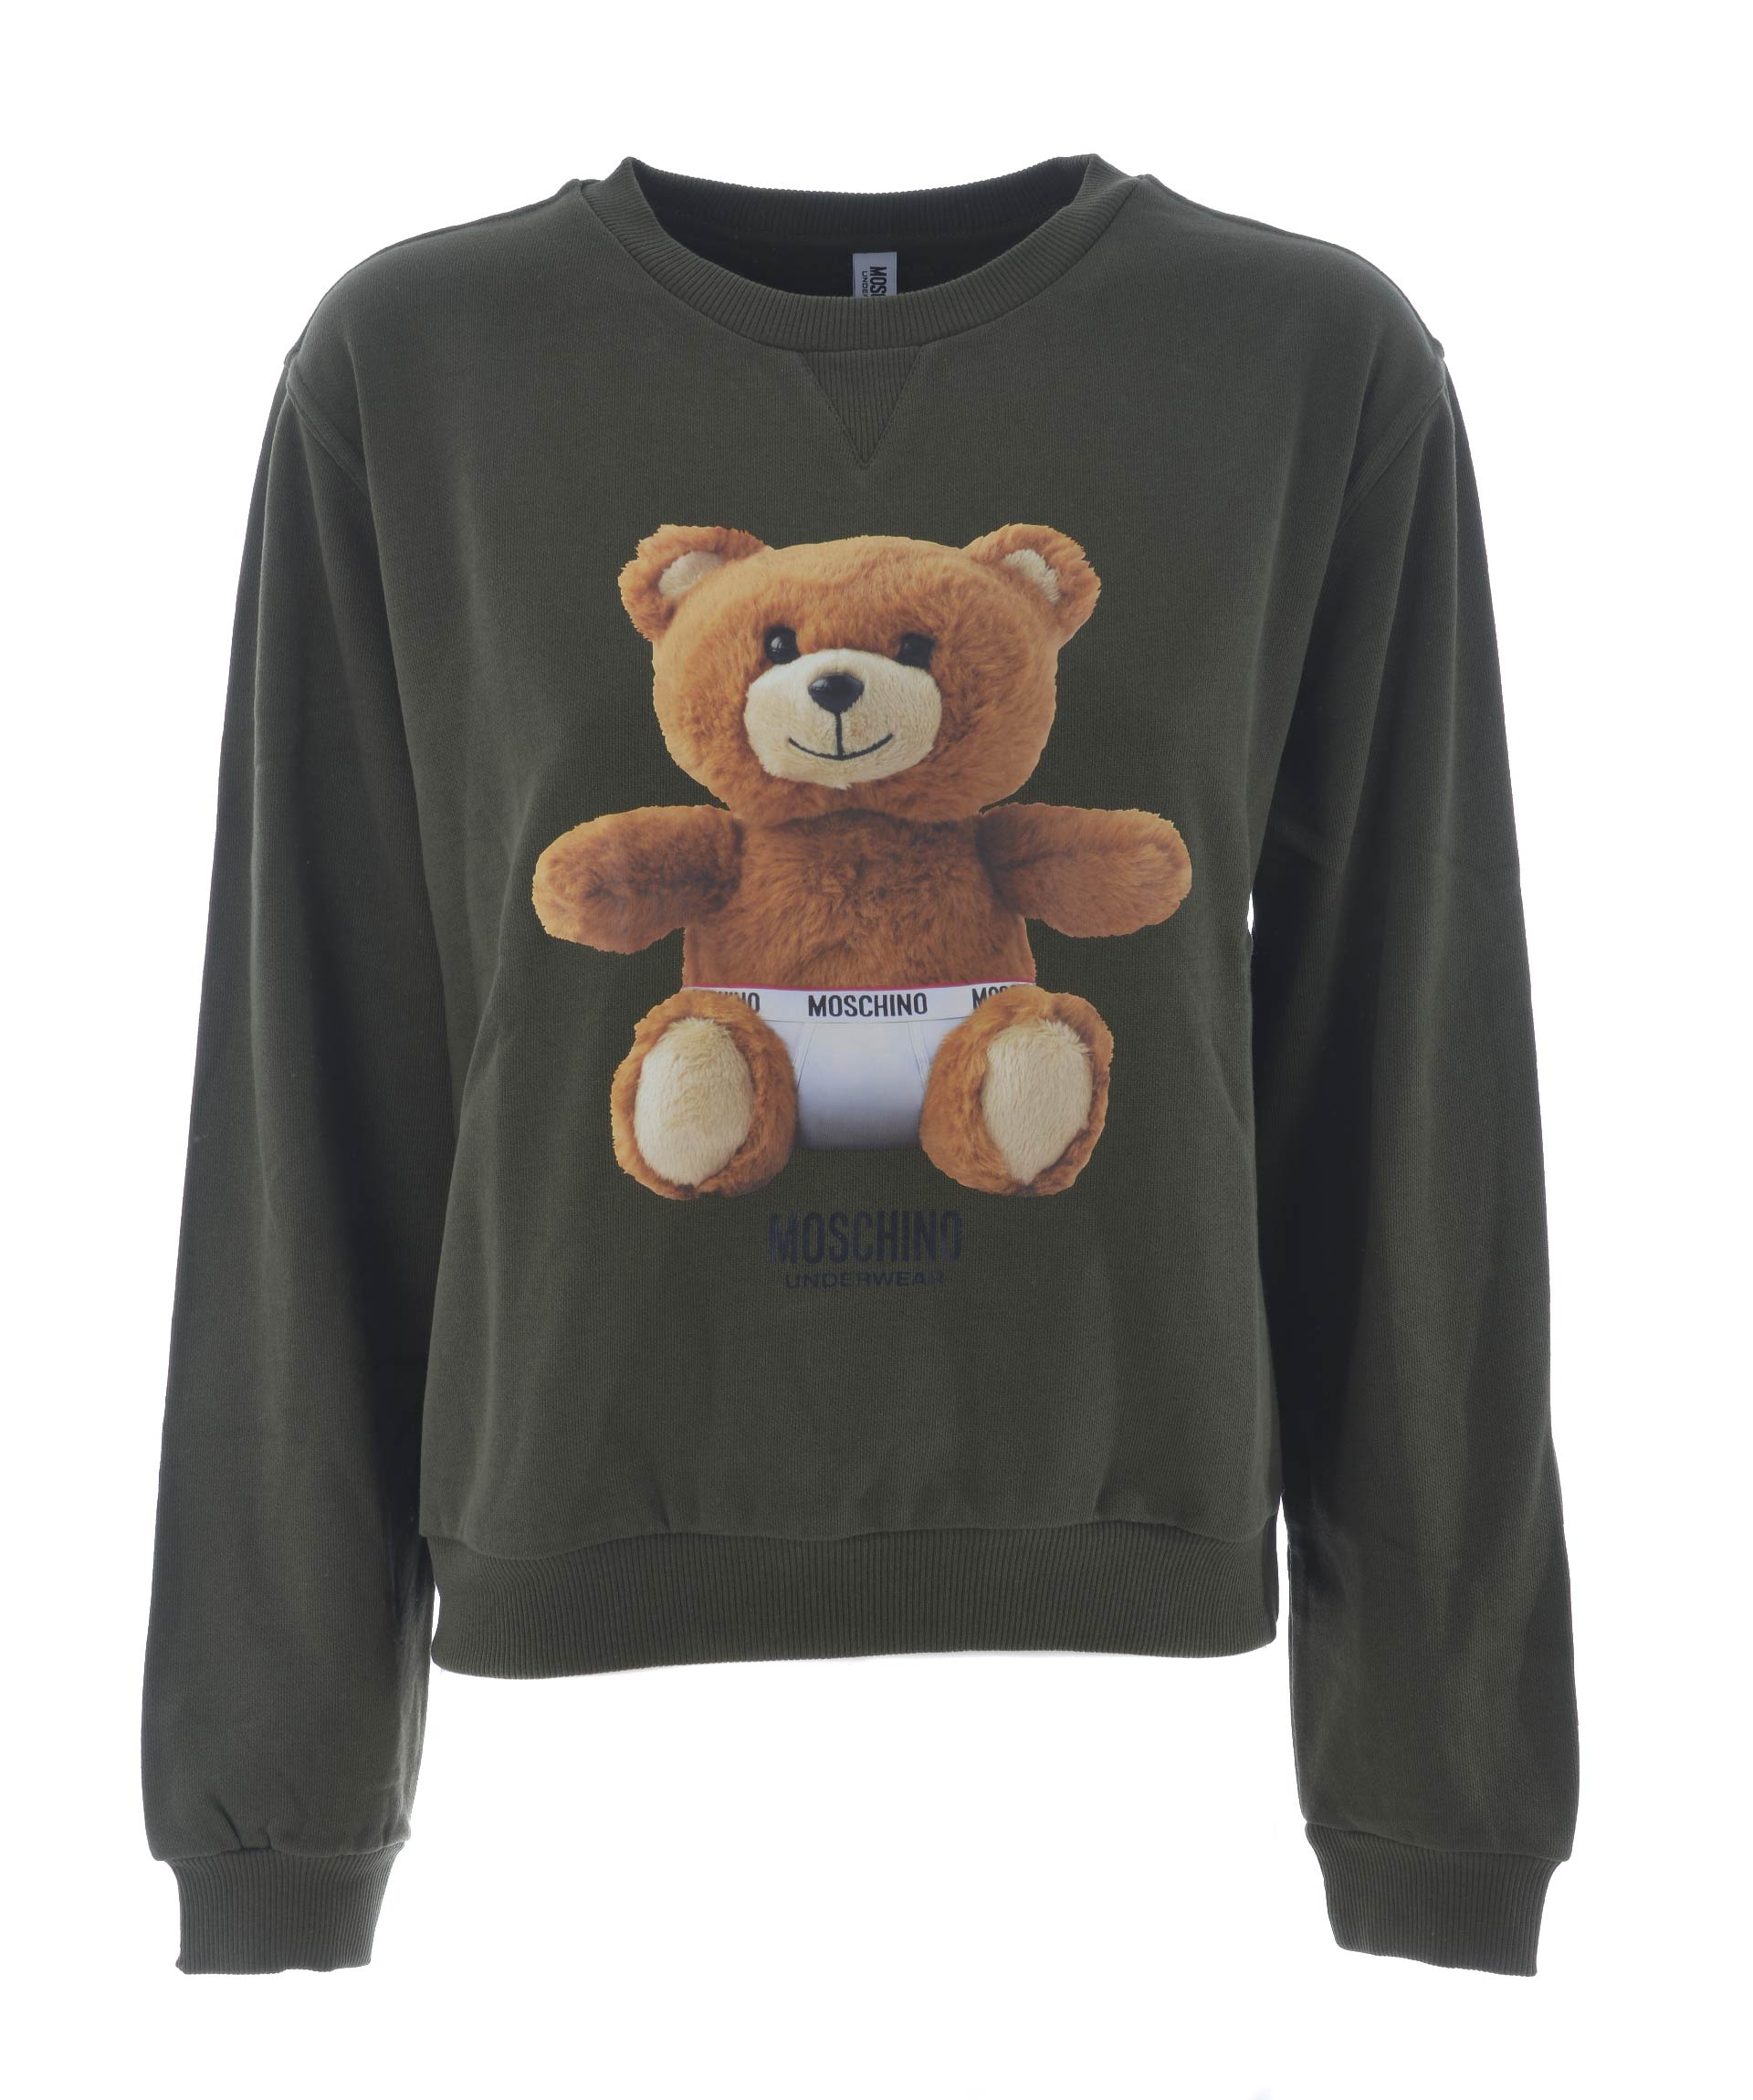 Moschino Teddy Bear Print Sweatshirt